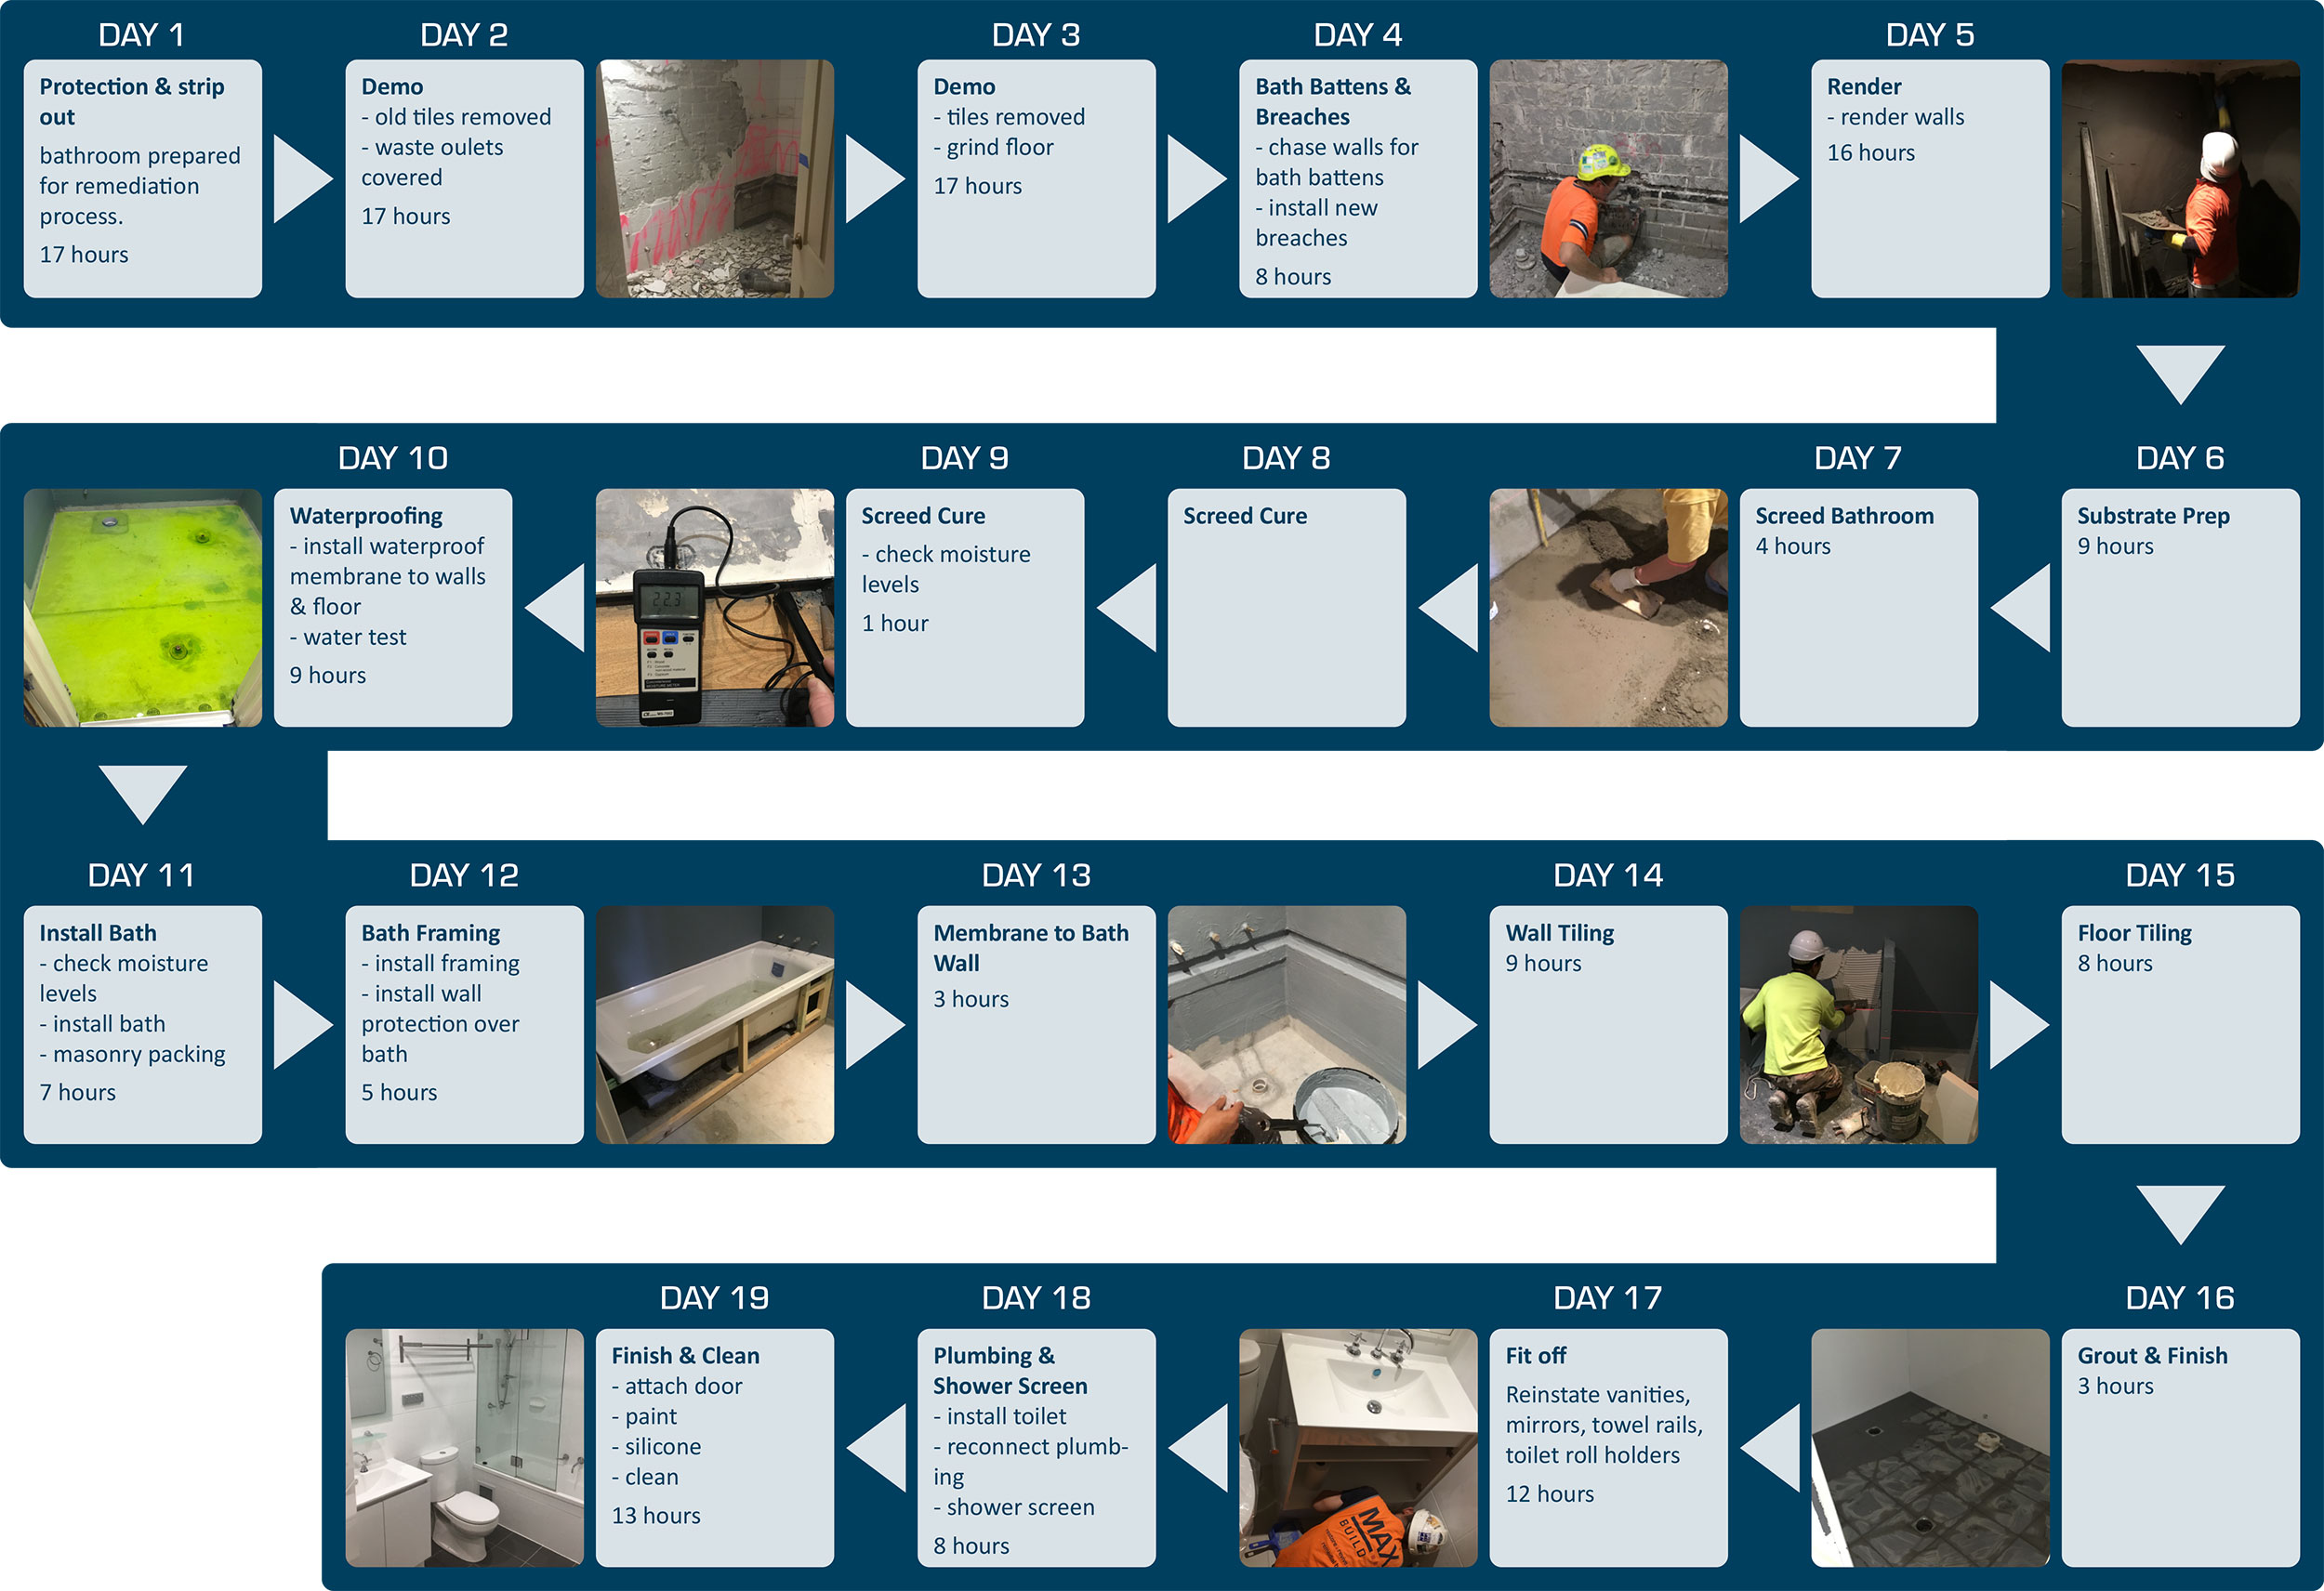 Remediation Process for multiple bathrooms